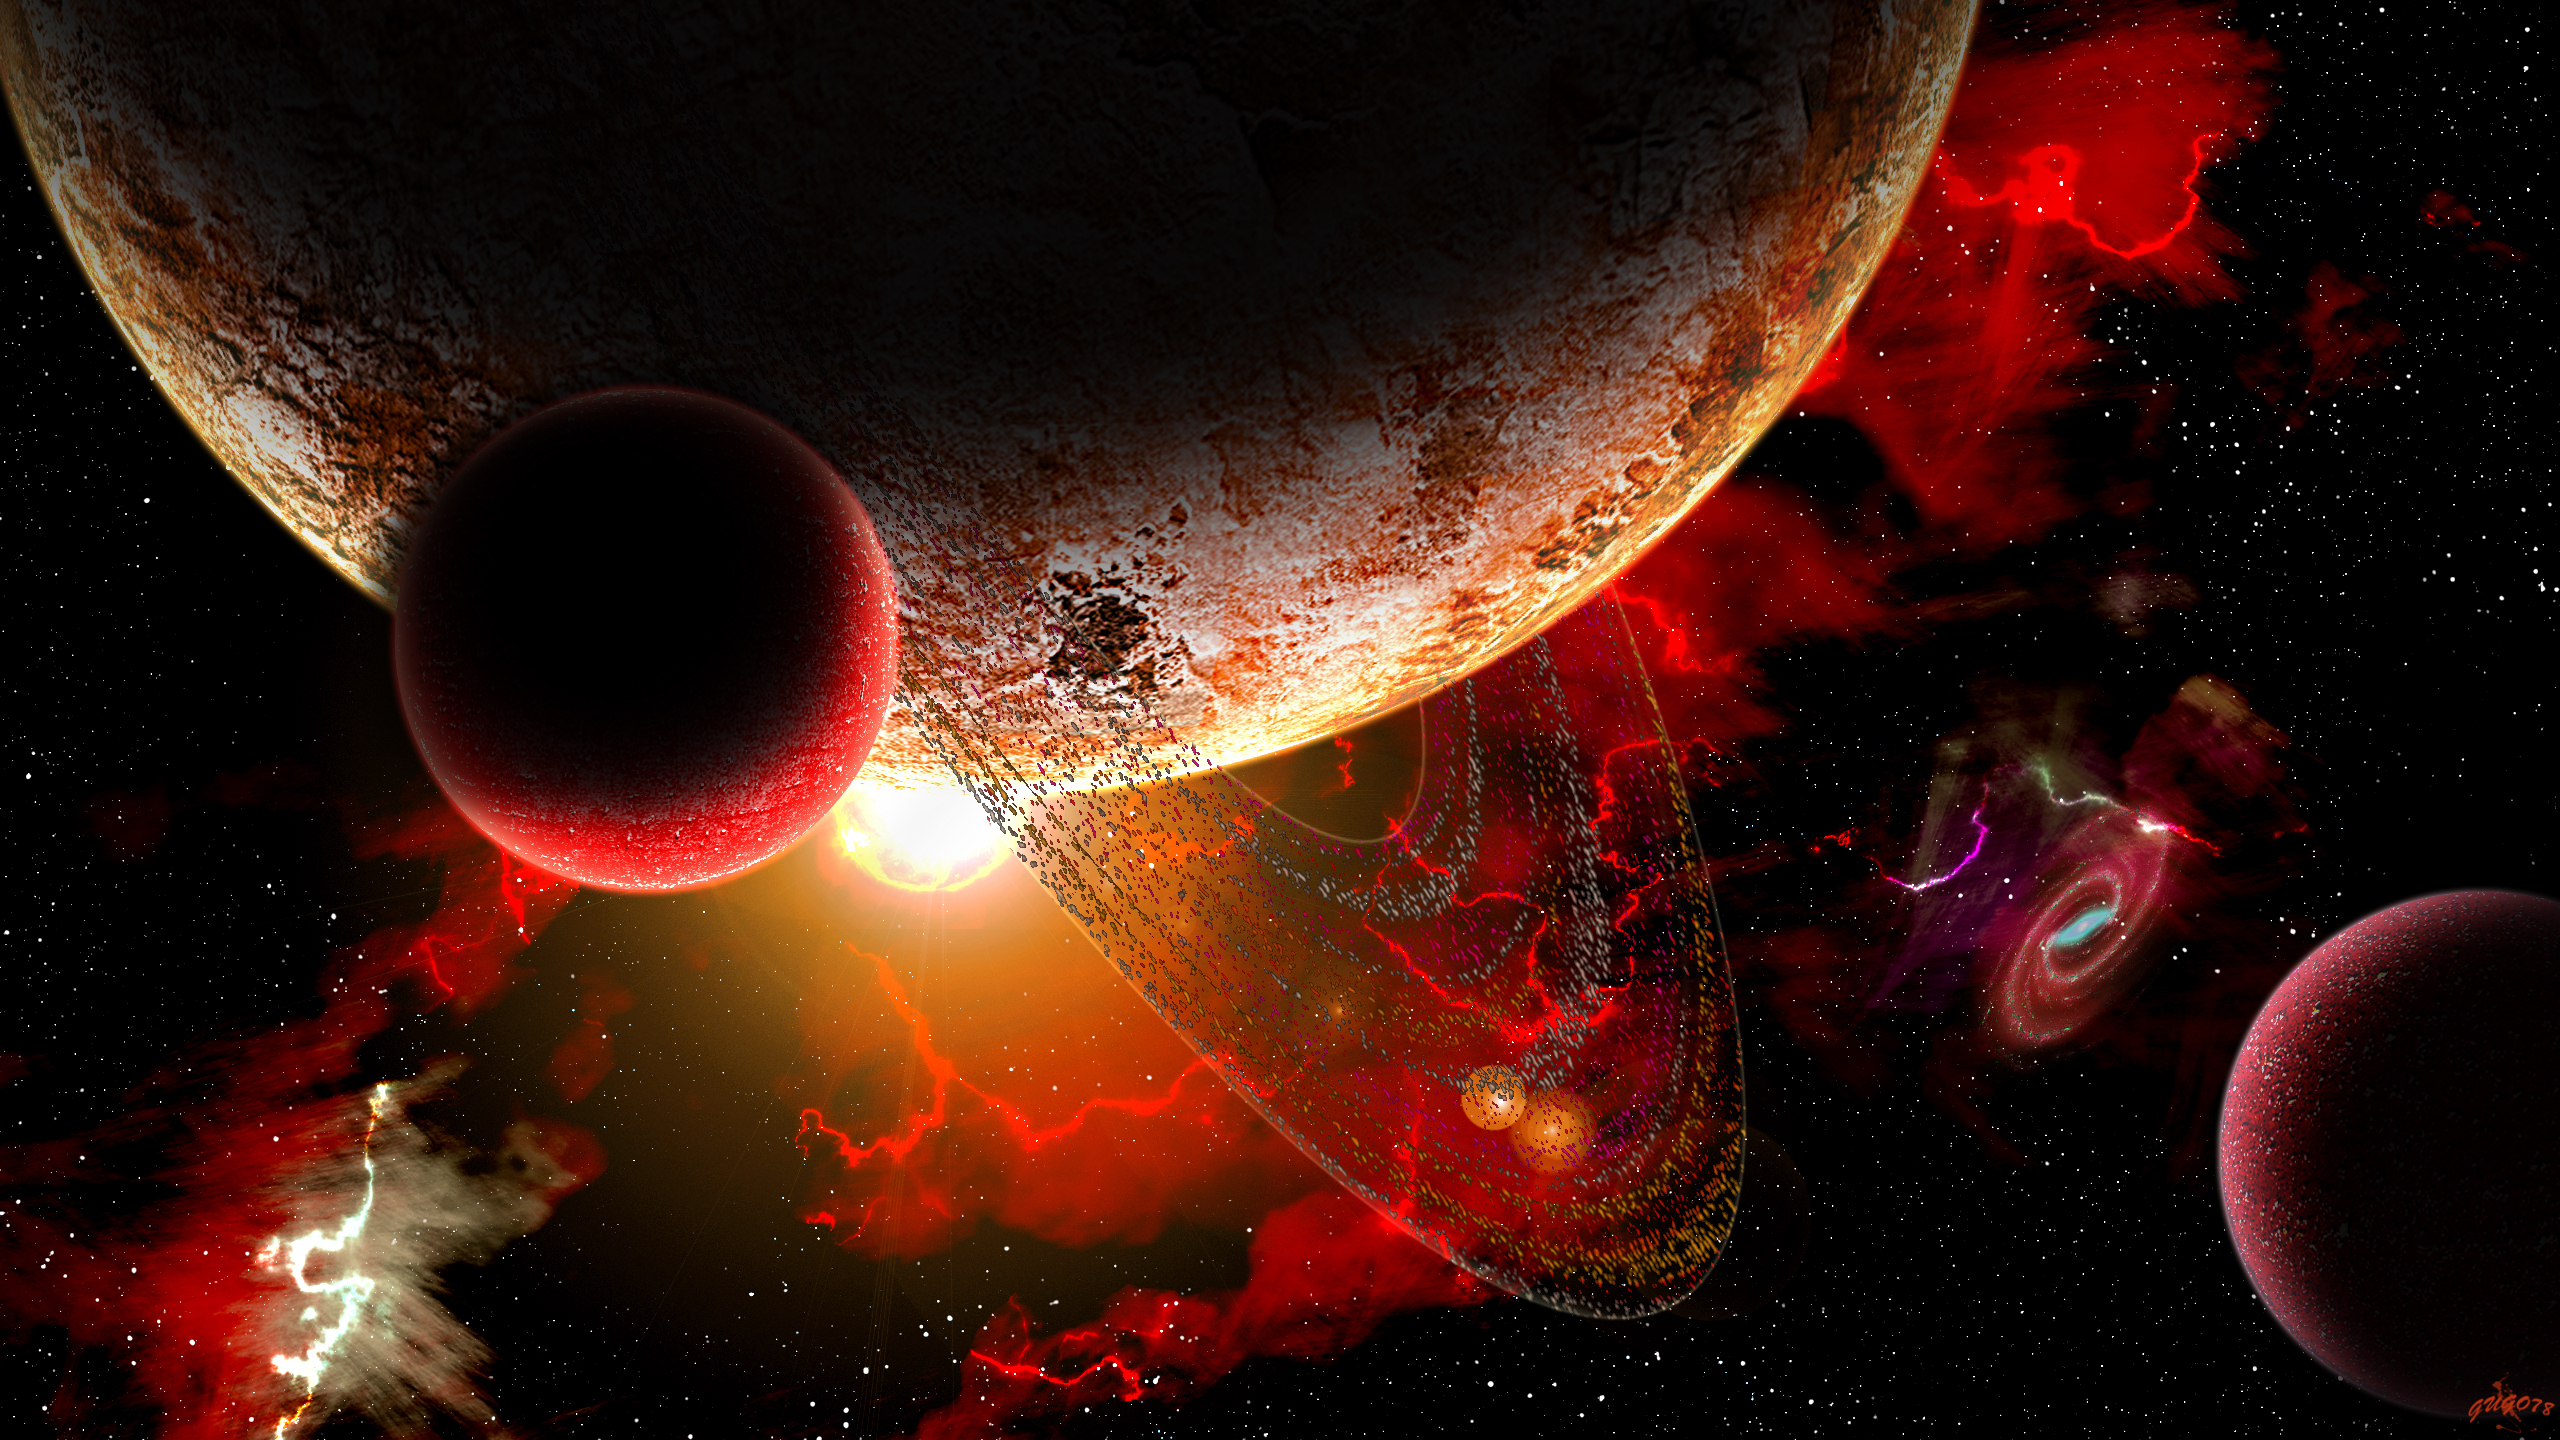 real planets and stars background - photo #4